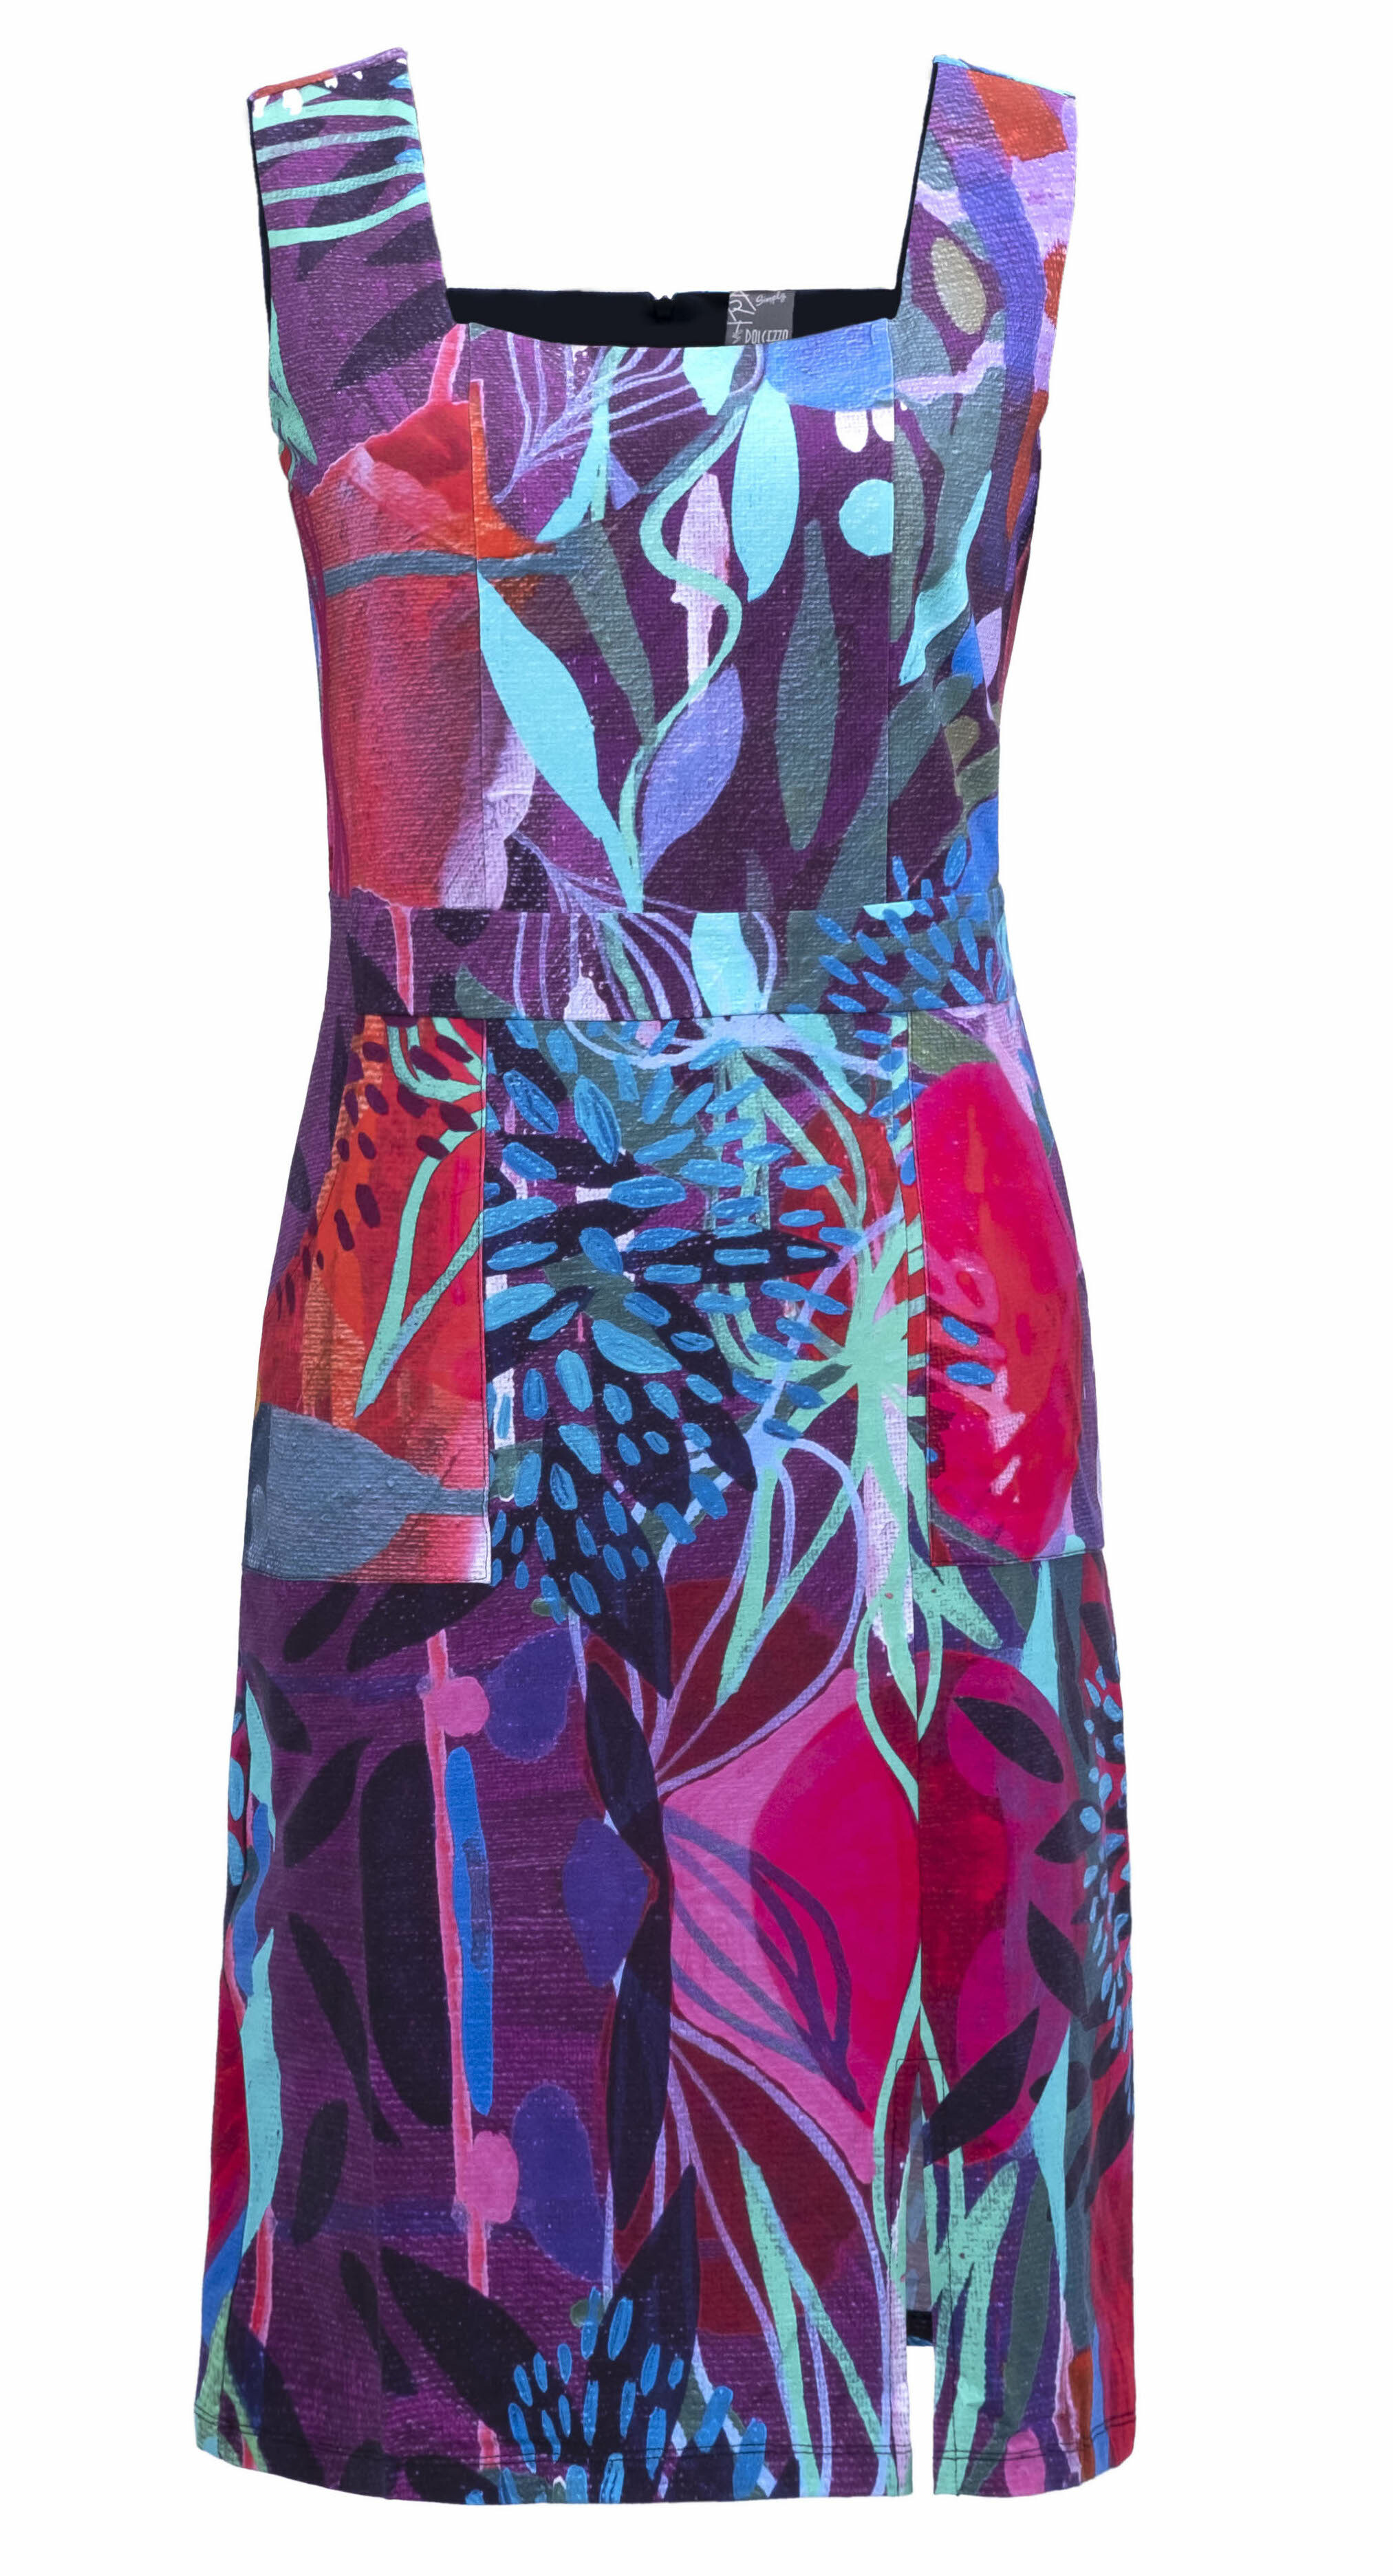 Simply Art Dolcezza: Color & Joy Tangle Of Leaves Abstract Art Midi Dress (Few Left!)